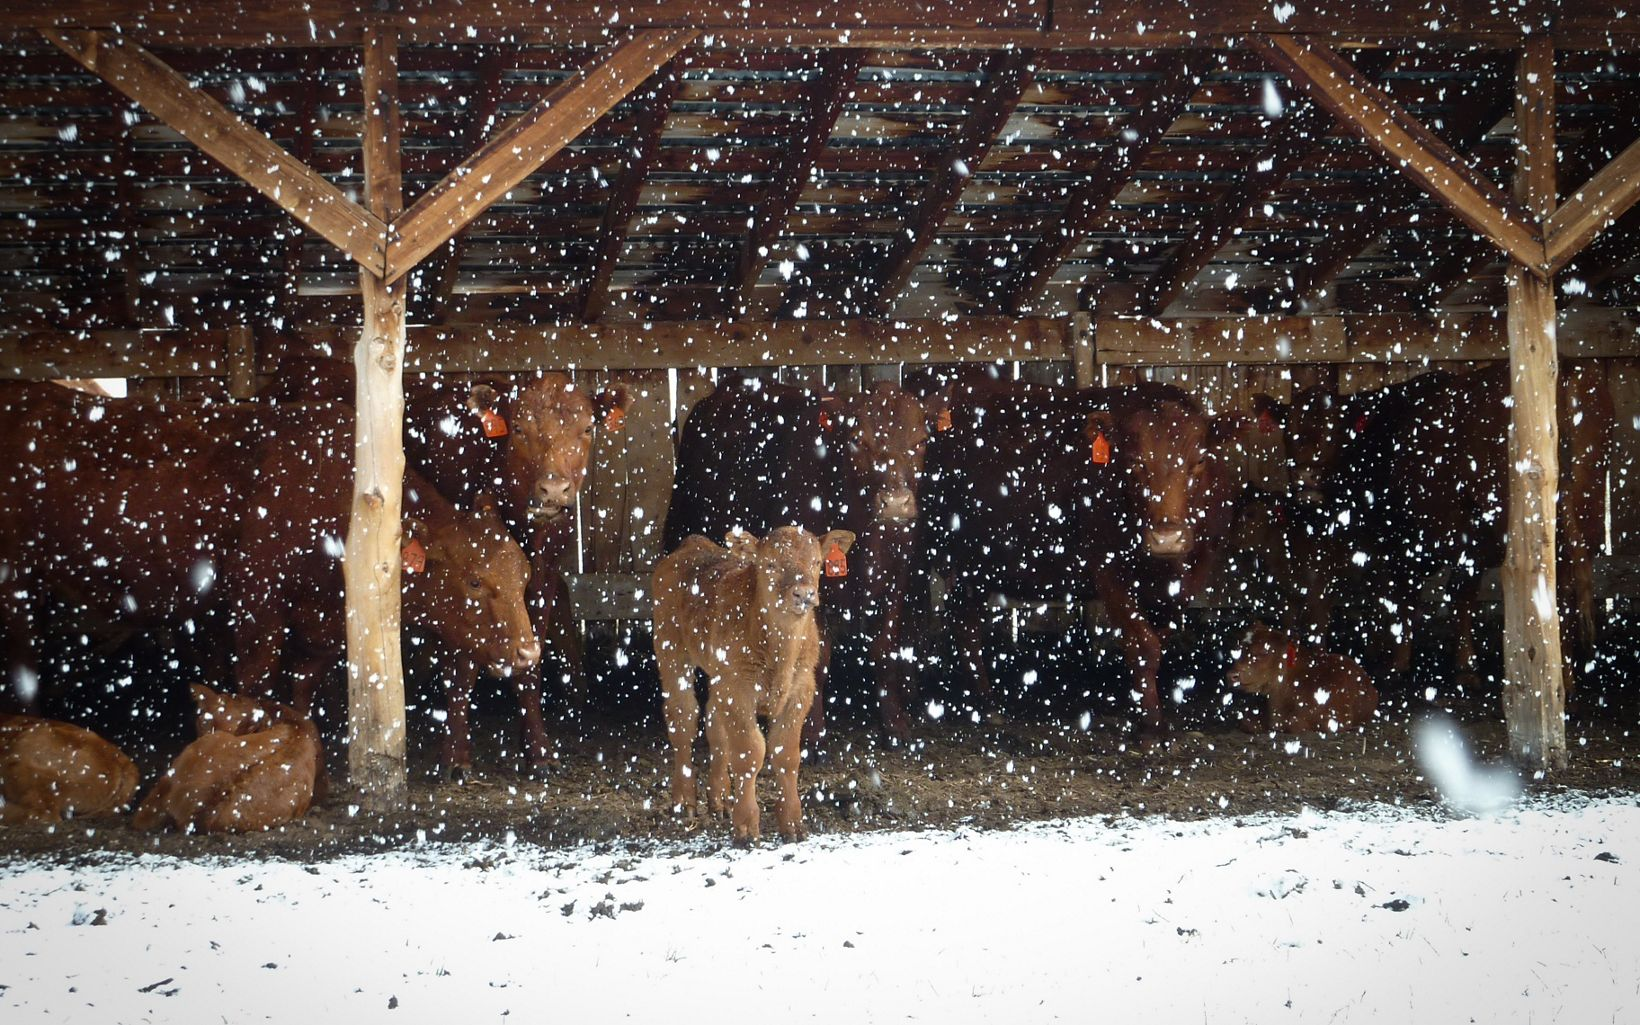 A calf is hypnotized by the falling snow at Trampe Ranch near Crested Butte, Colorado.